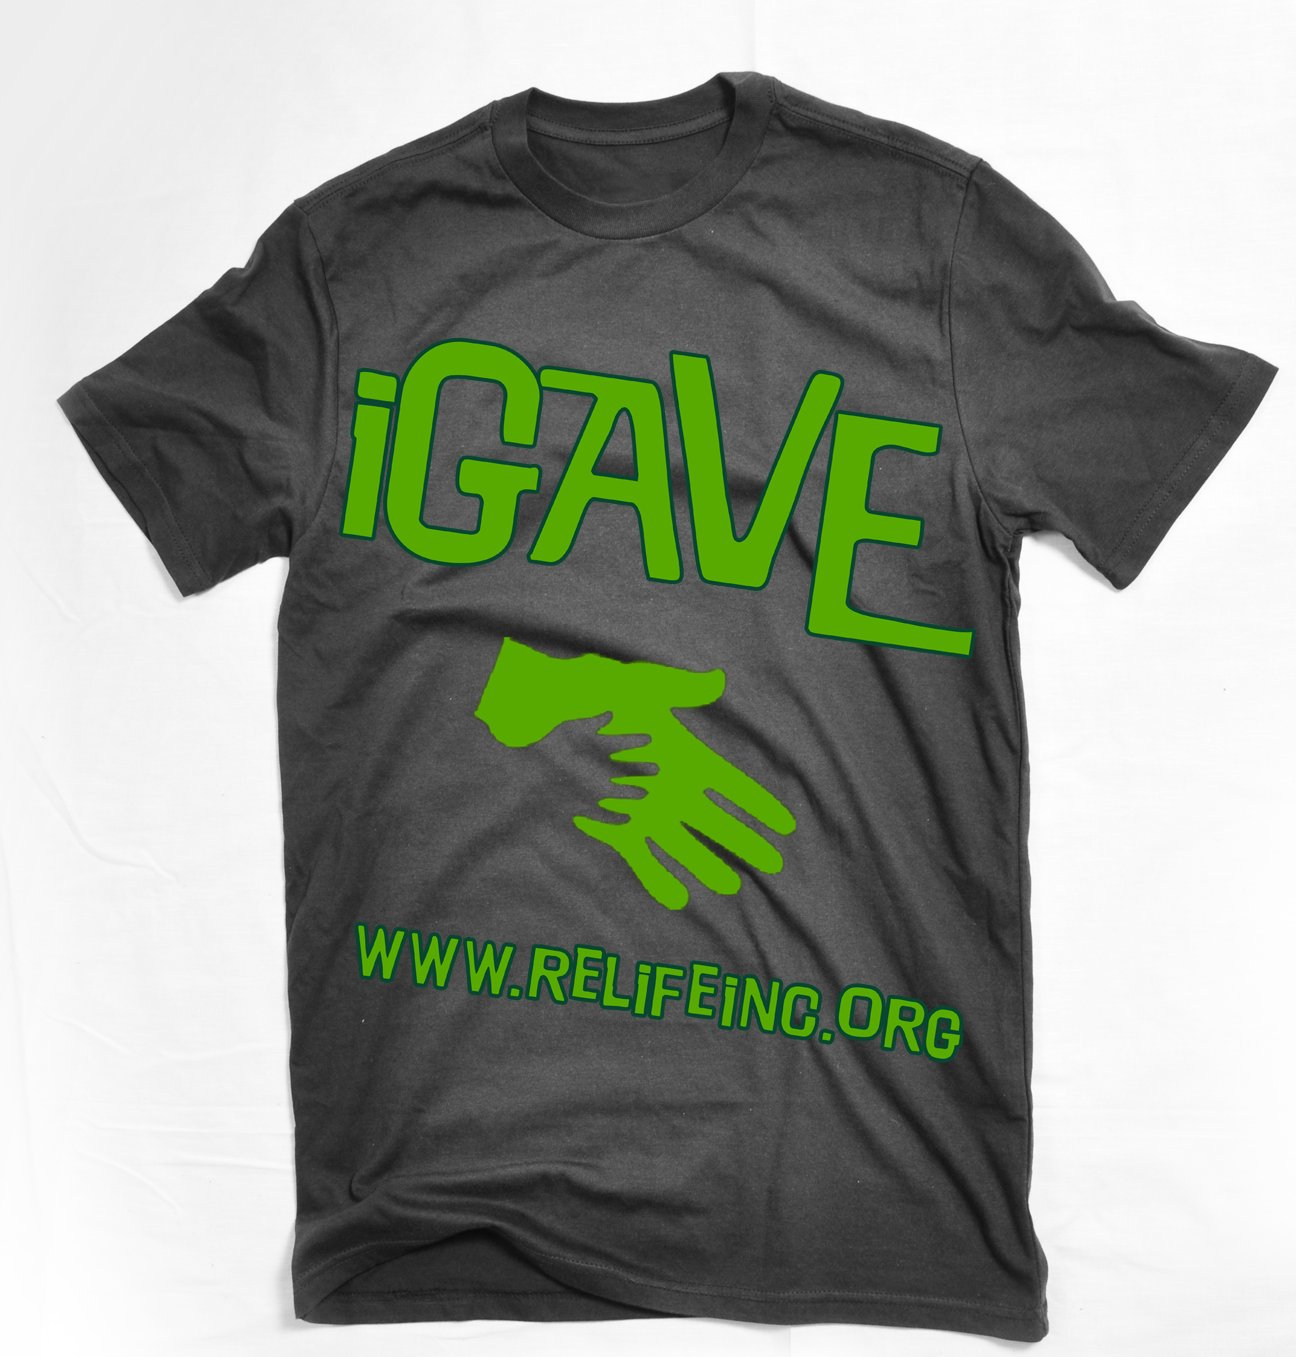 Re:LIFE 'iGAVE' Tees - Large